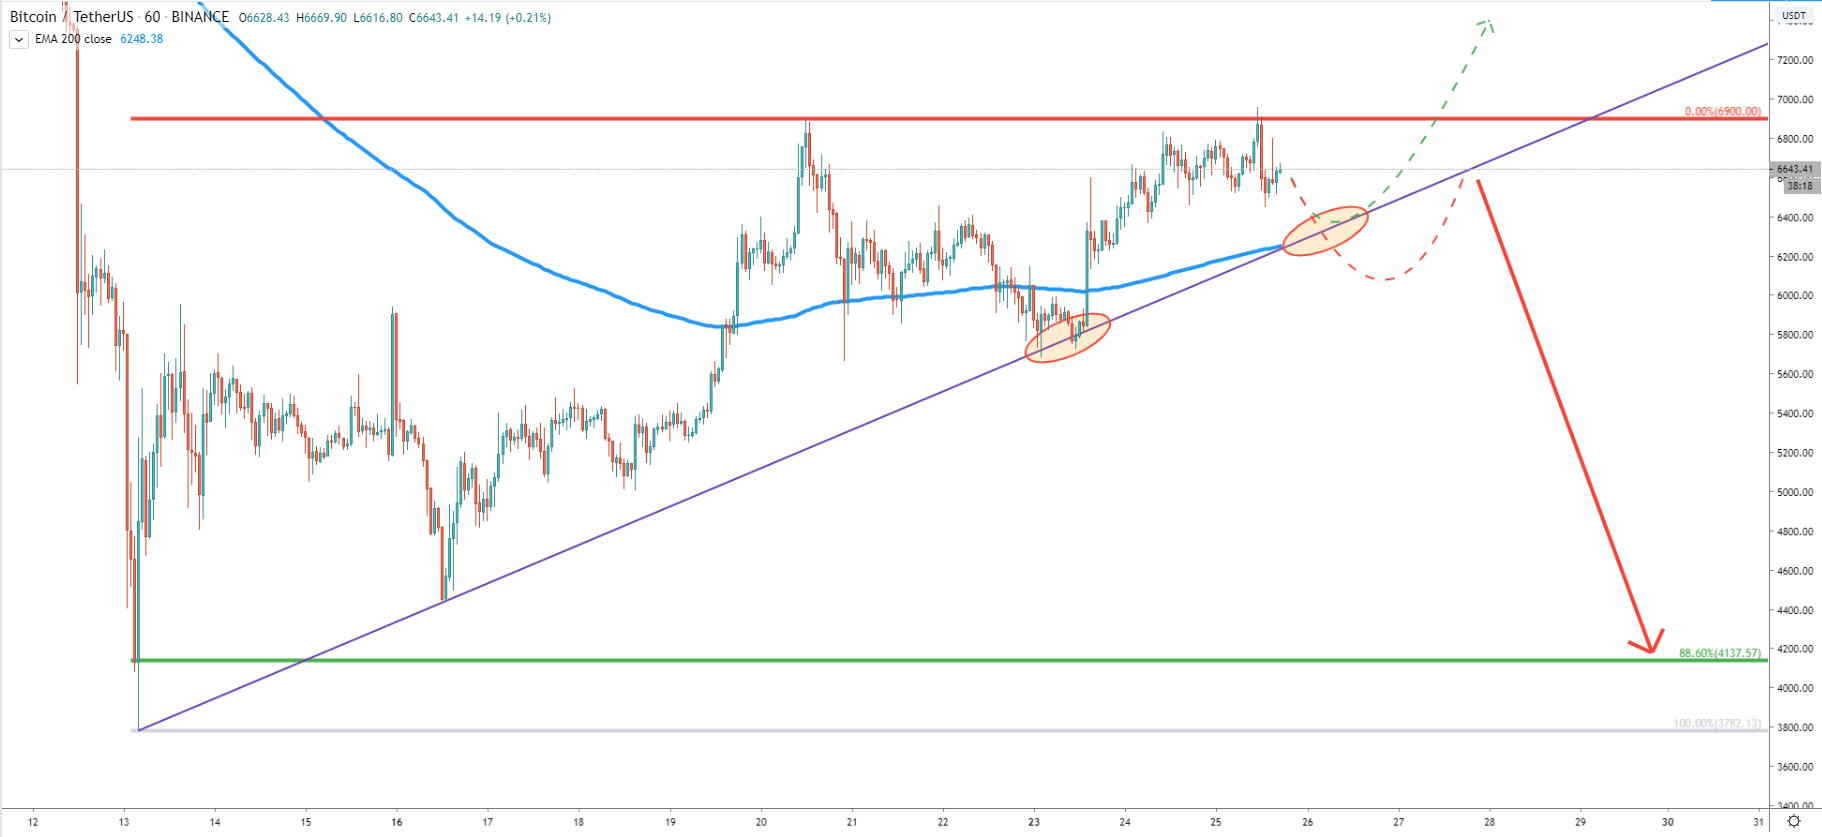 BTC/USDT 1-Hour Technical Analysis 25 Mar 2020